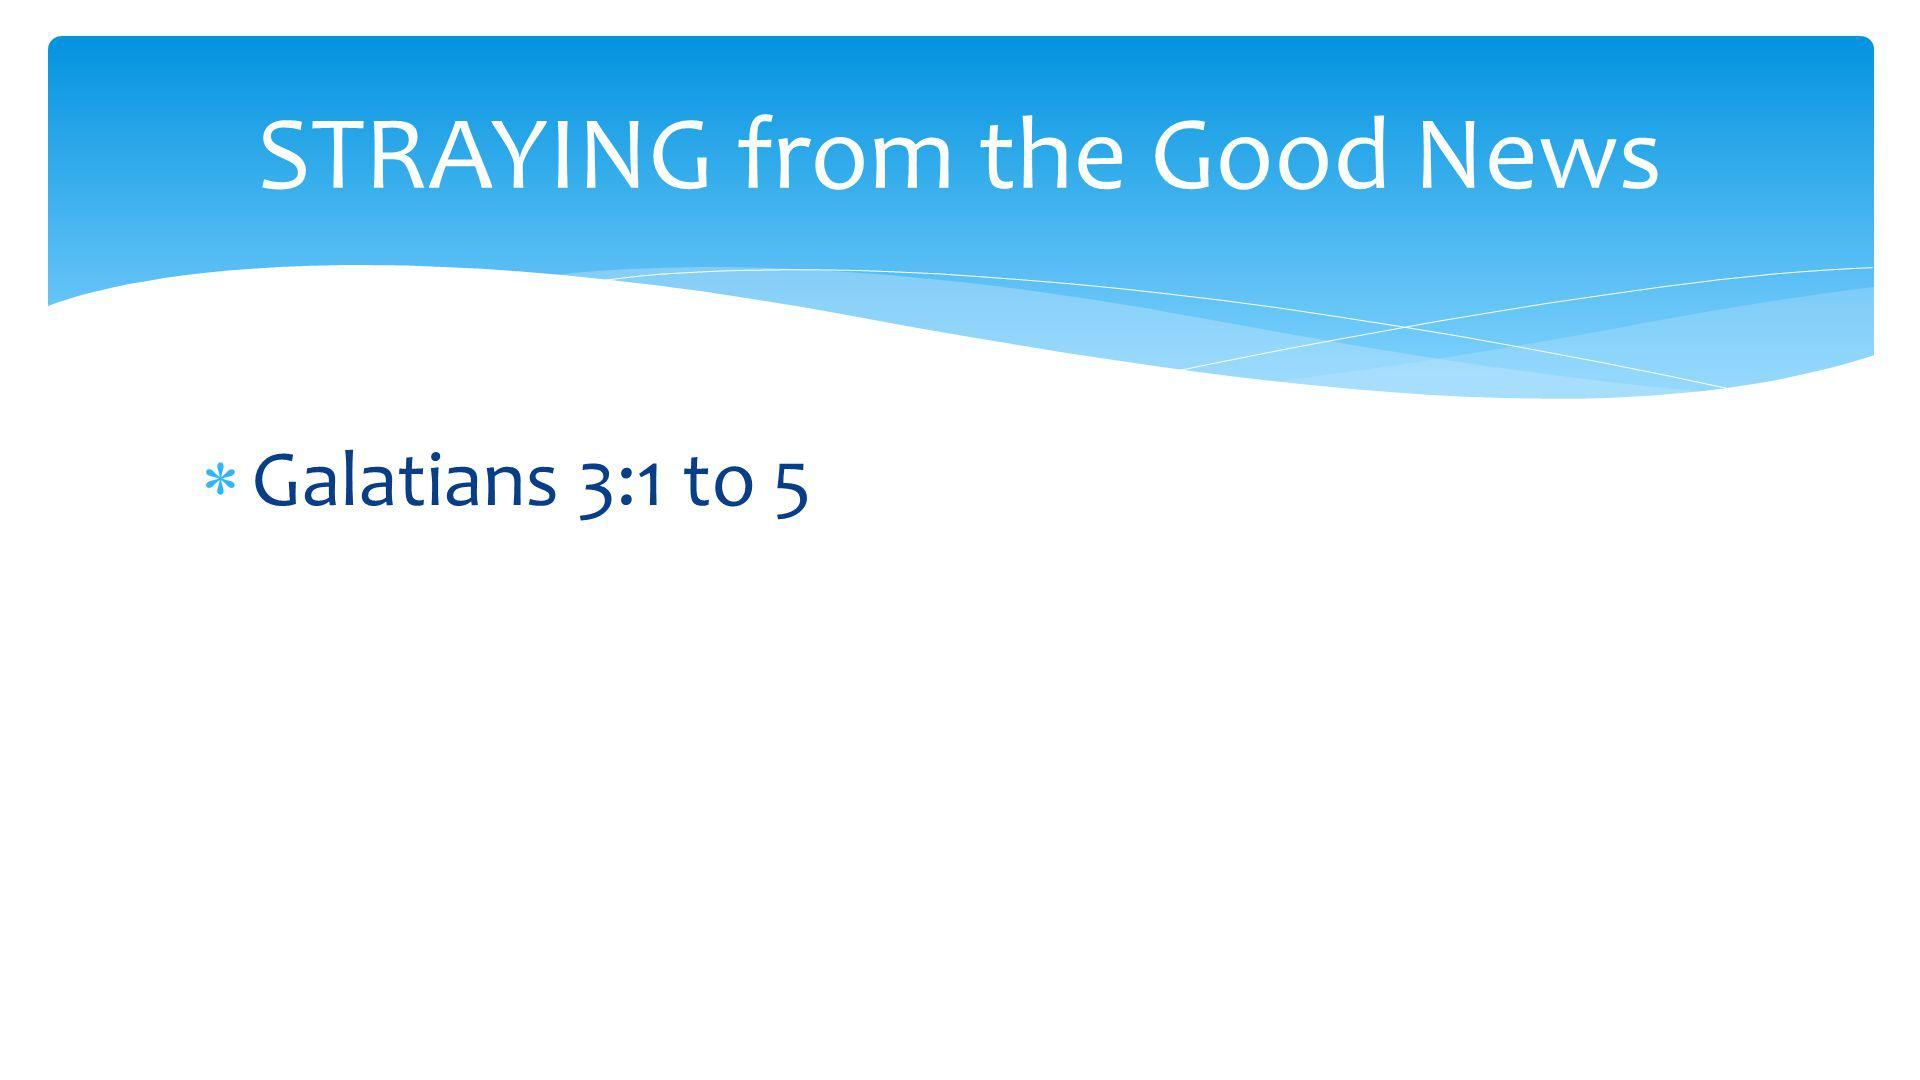  Galatians 3:1 to 5 STRAYING from the Good News